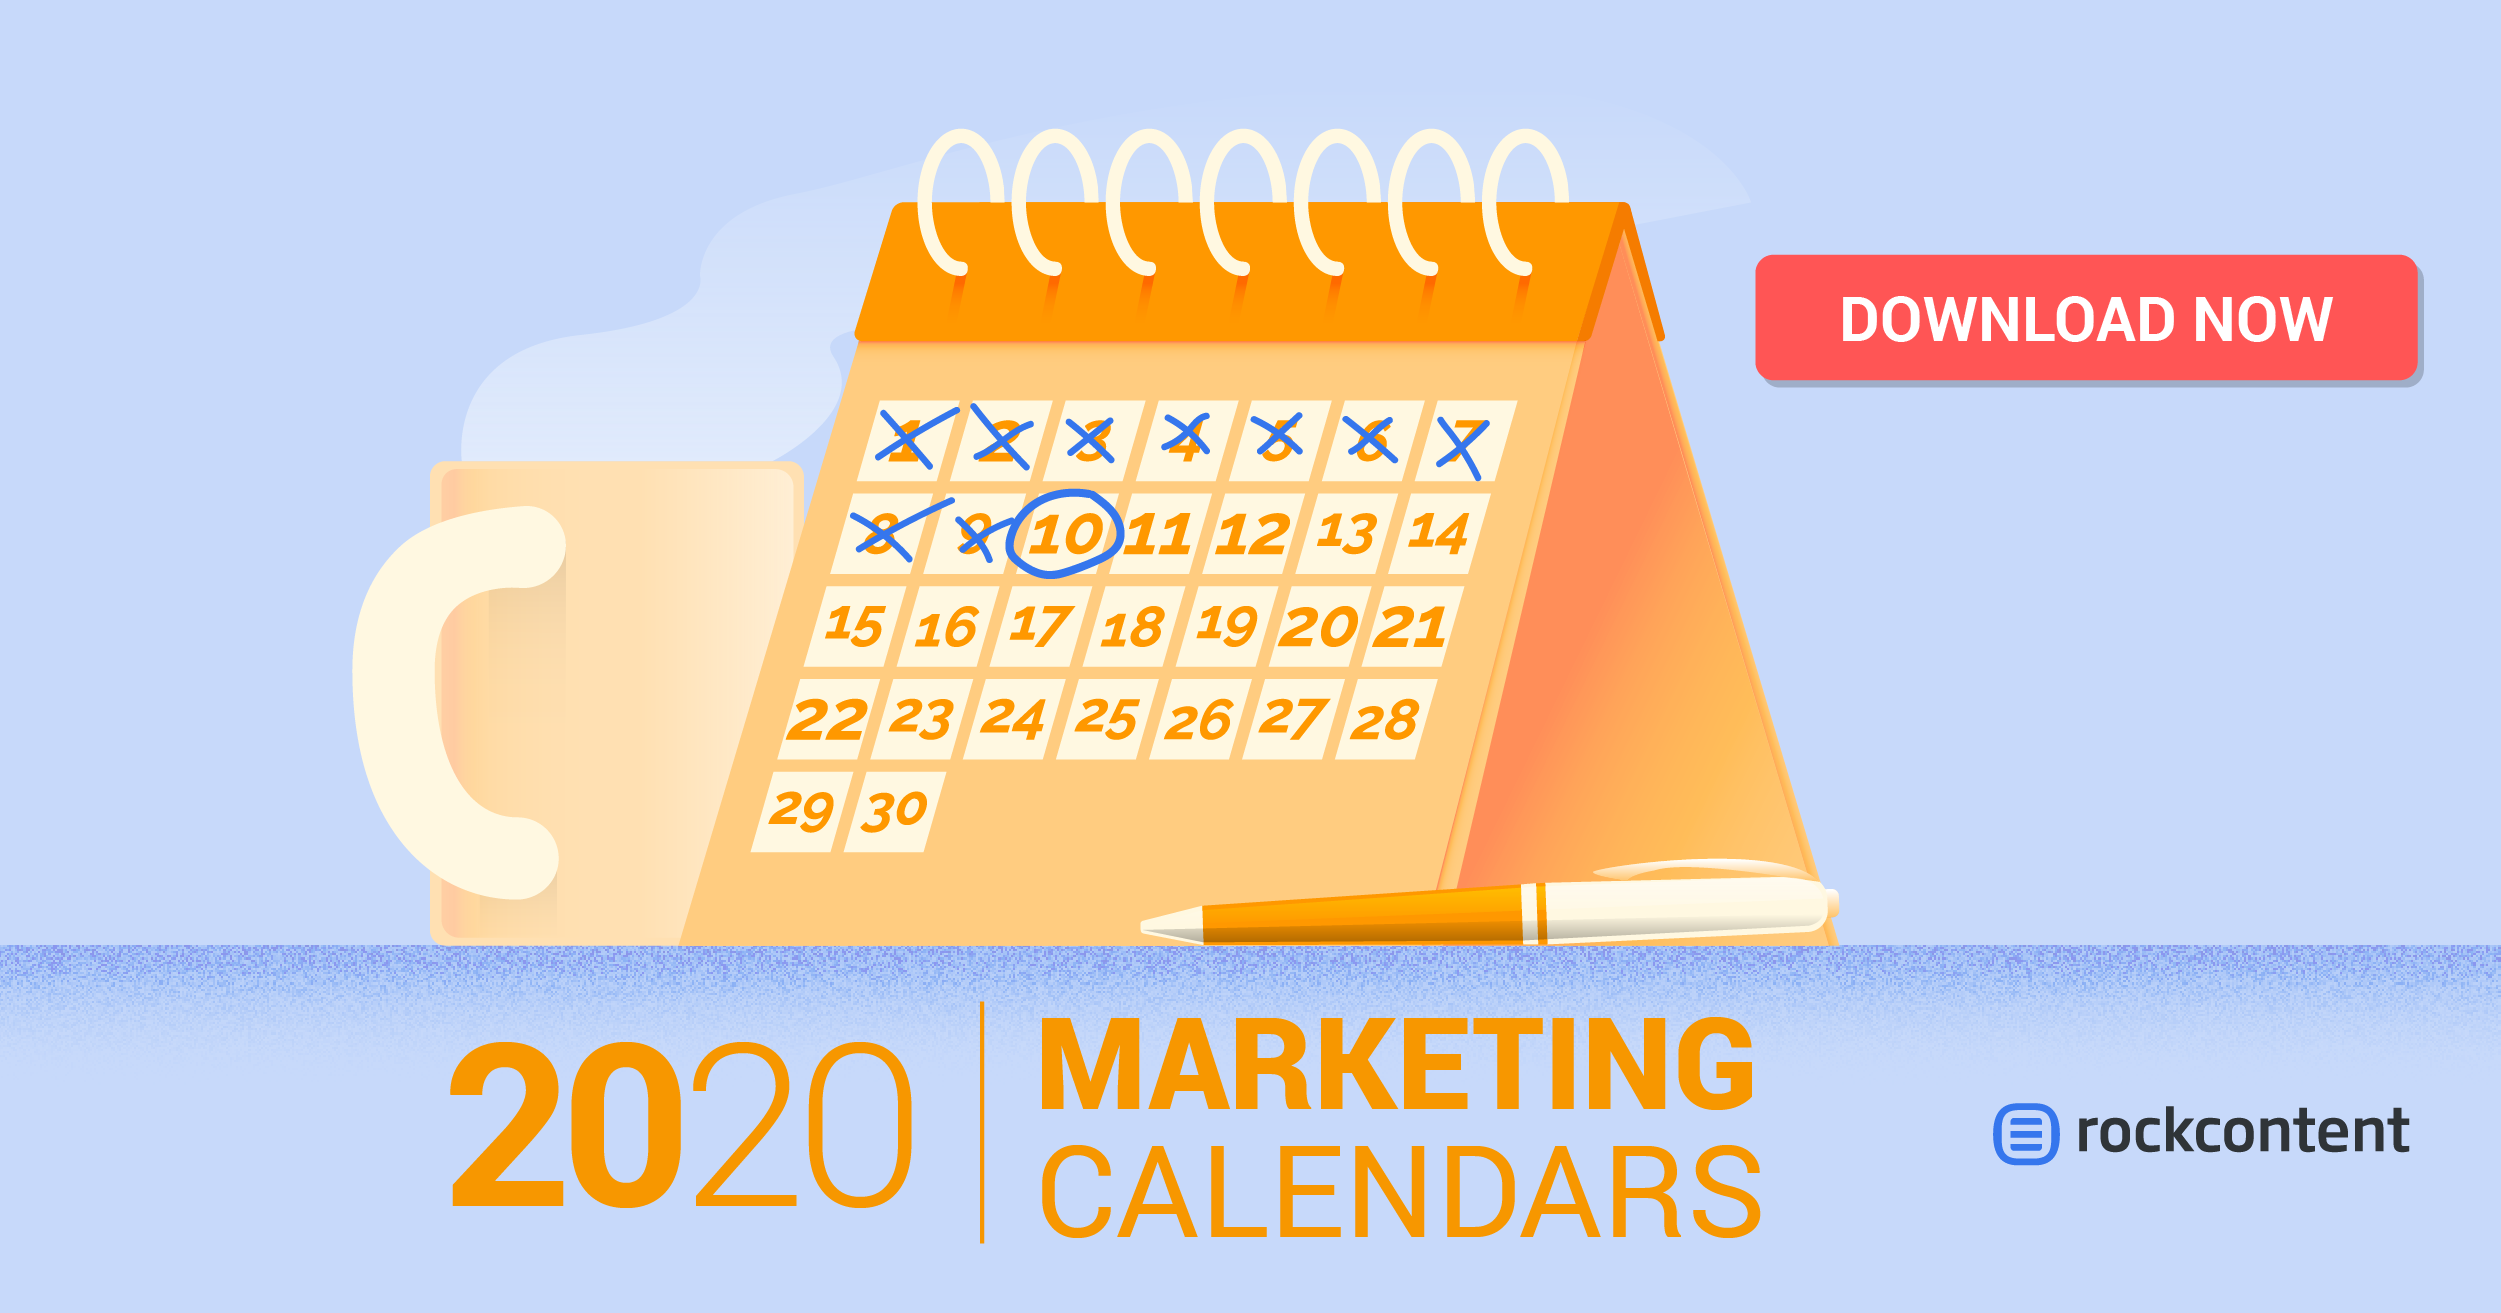 Marketing Calendars